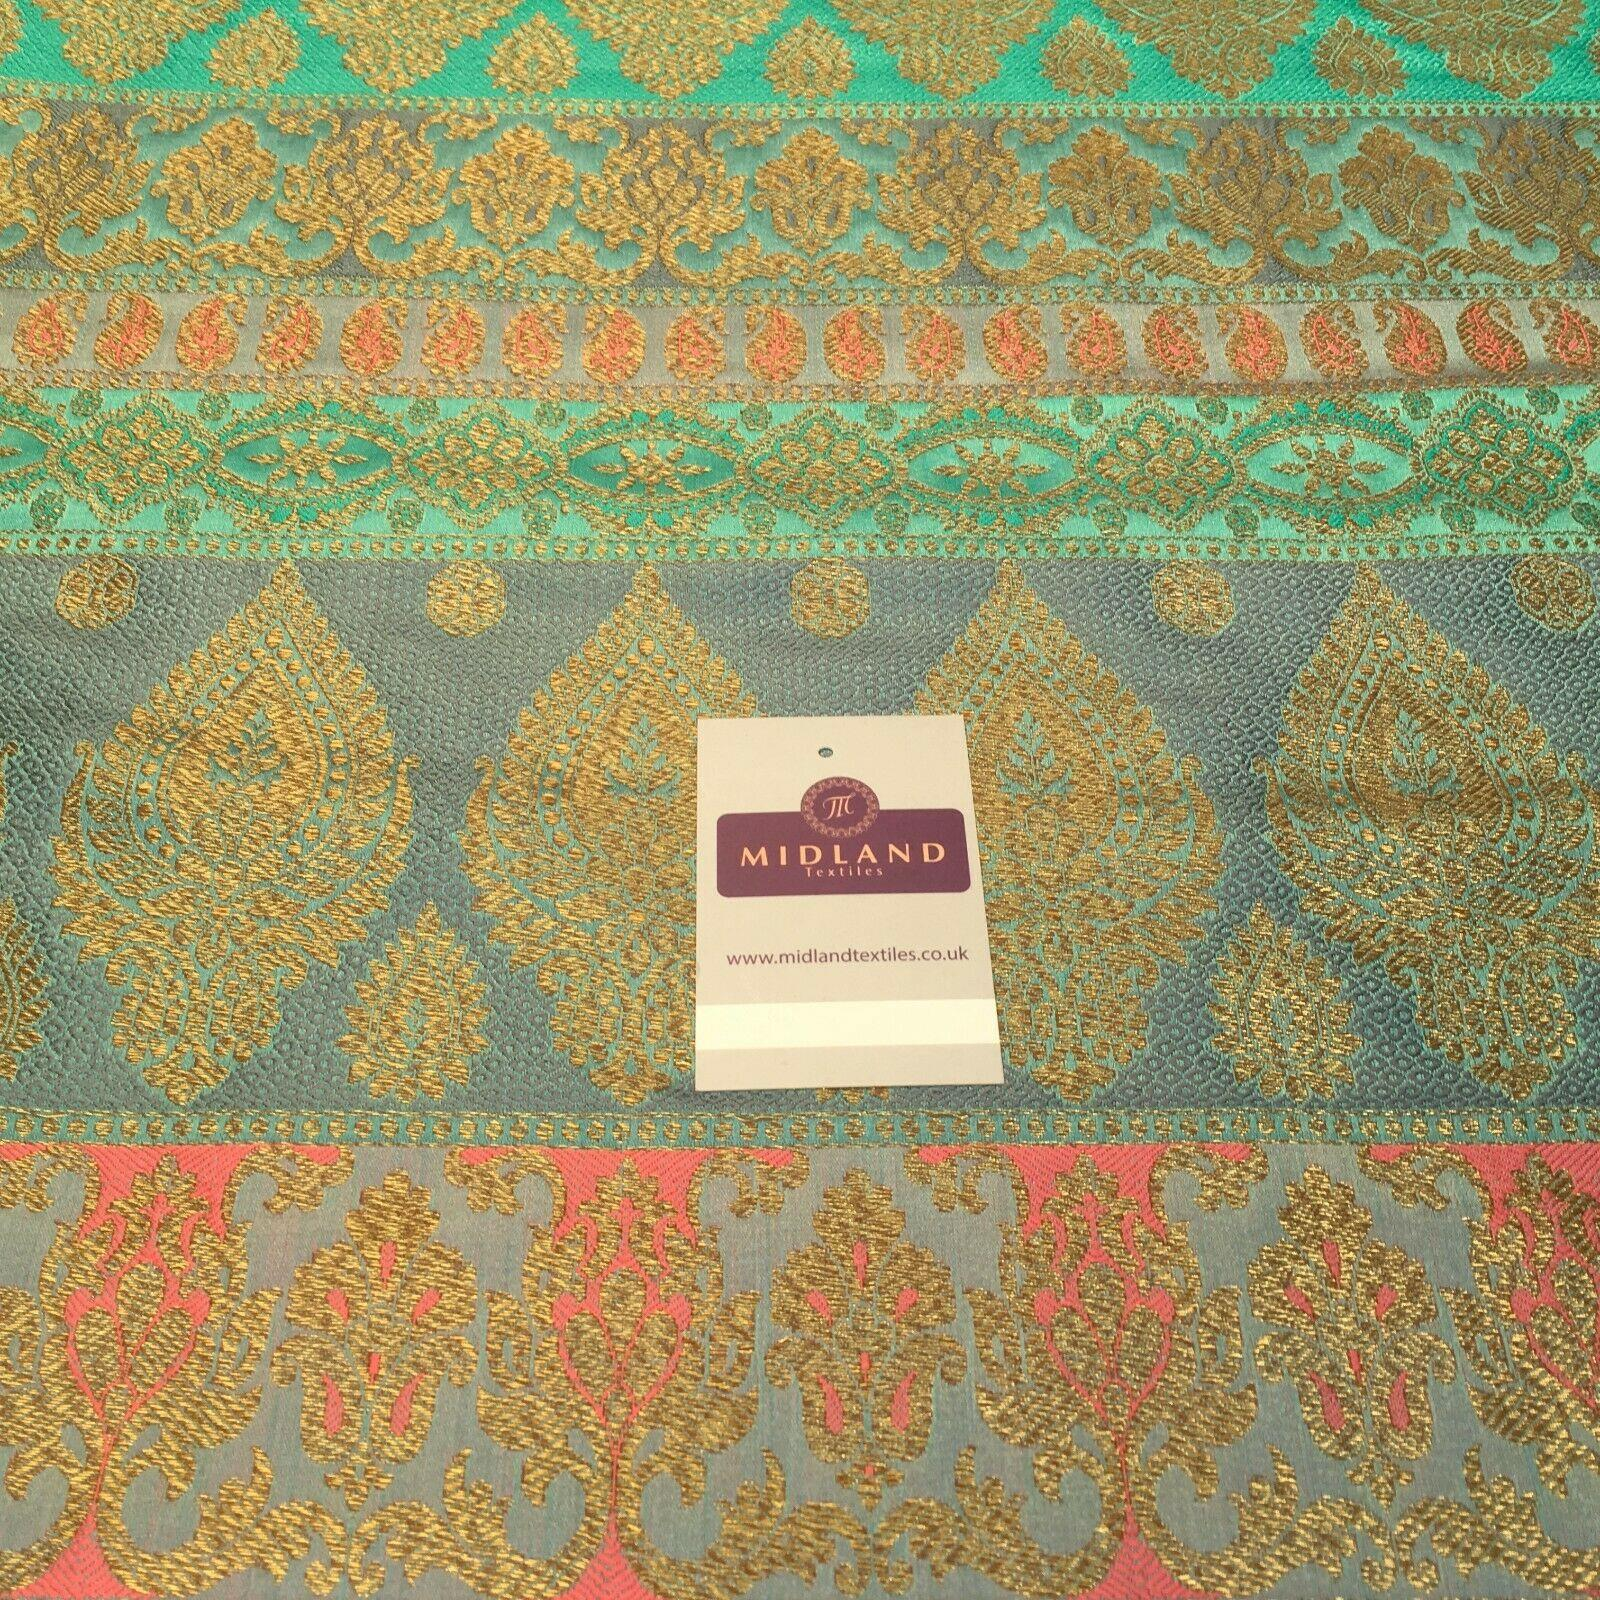 Indian Faux Silk Paisley Floral Border Banarsi brocade Fabric 110cm MP1240